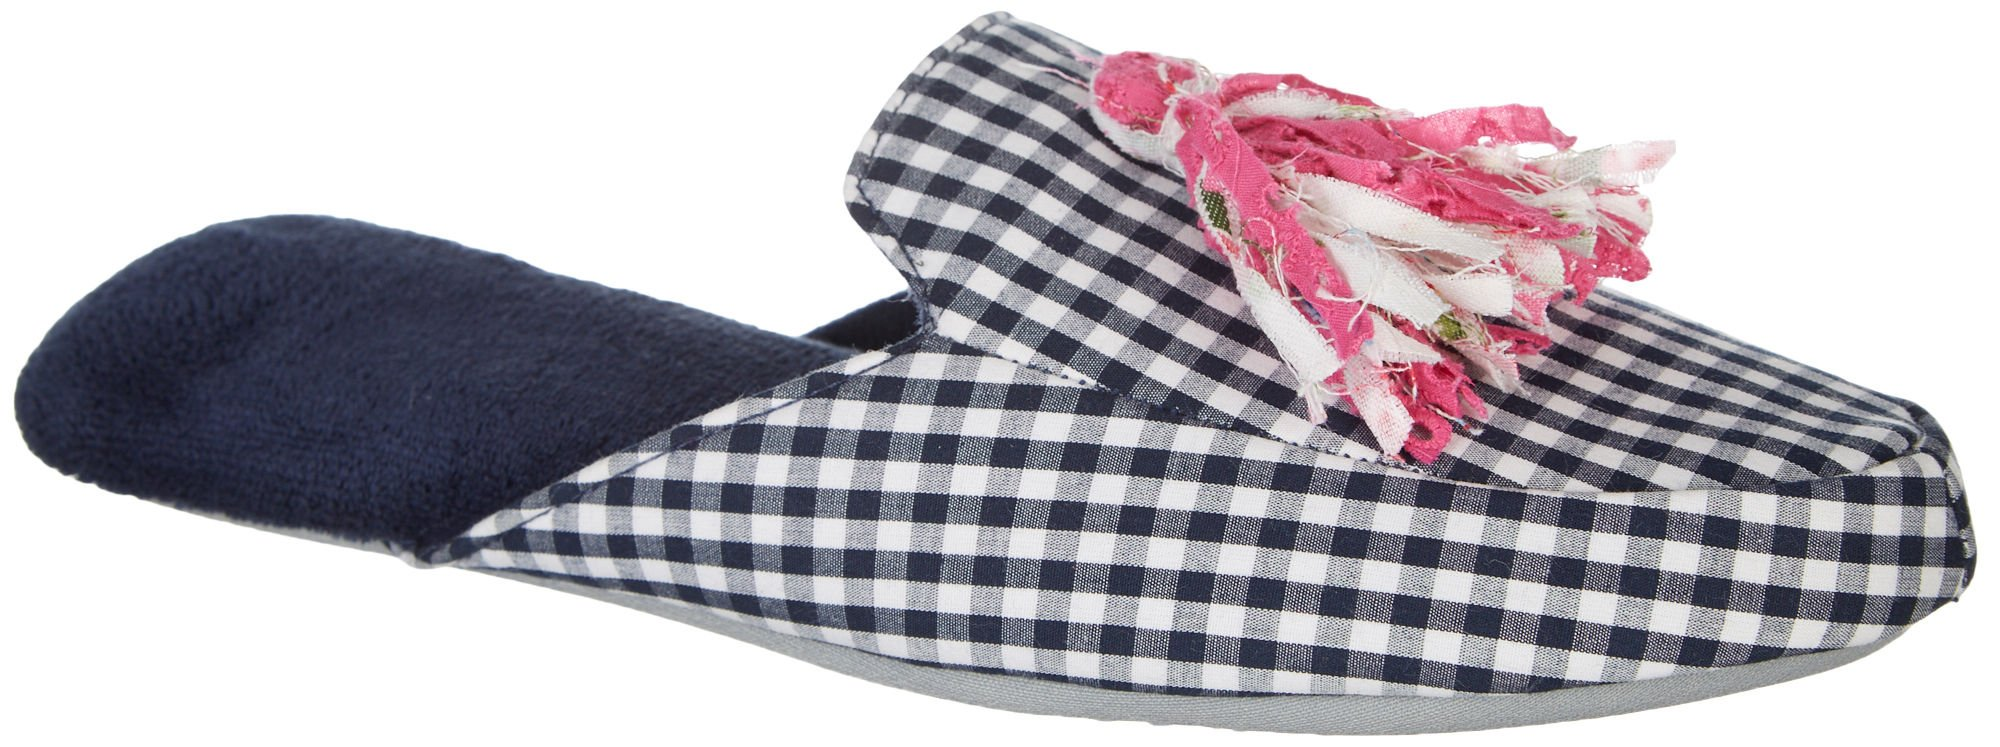 Dearfoams Womens Gingham Tassel Scuff Slippers Large Peacoat Blue/White